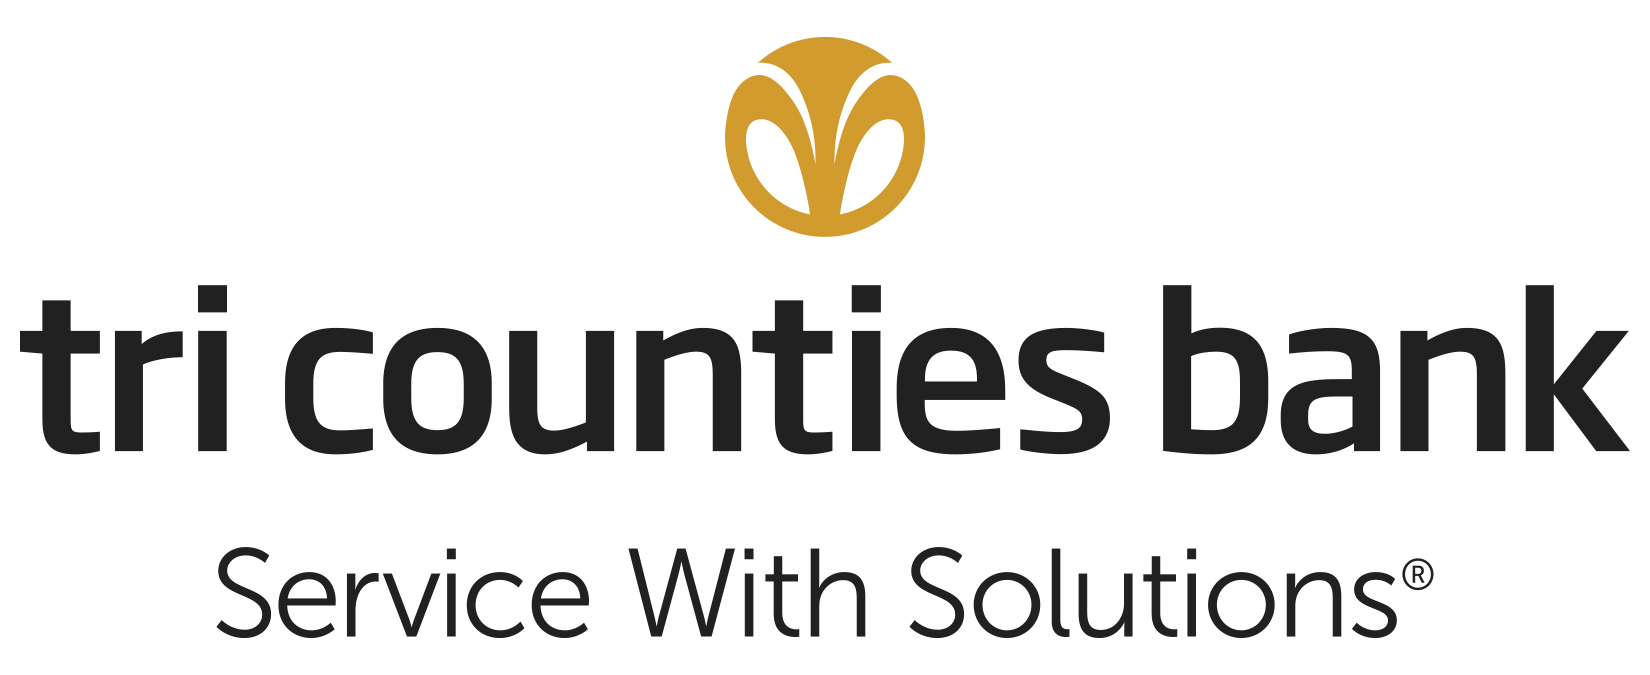 Tri Counties Bank Logo